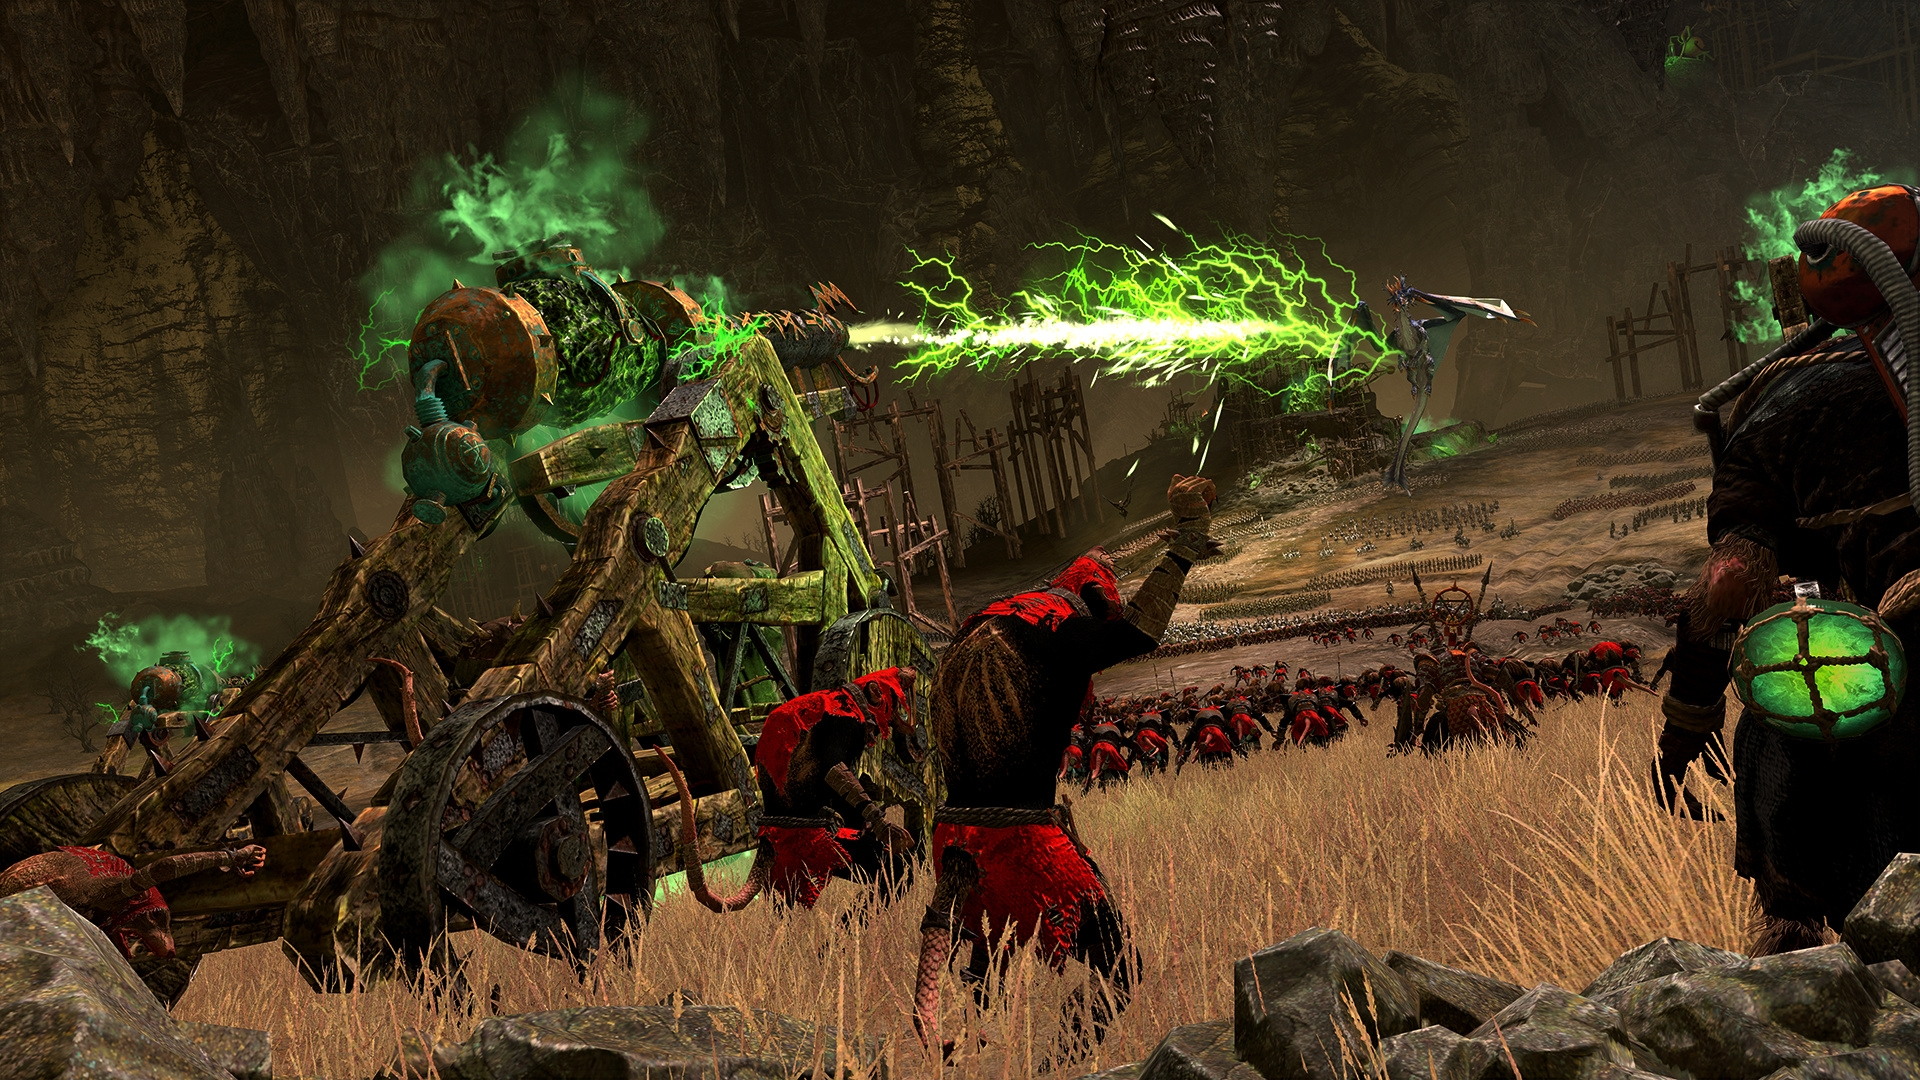 Moon dragon star dragon picture in thread total war forums voltagebd Choice Image